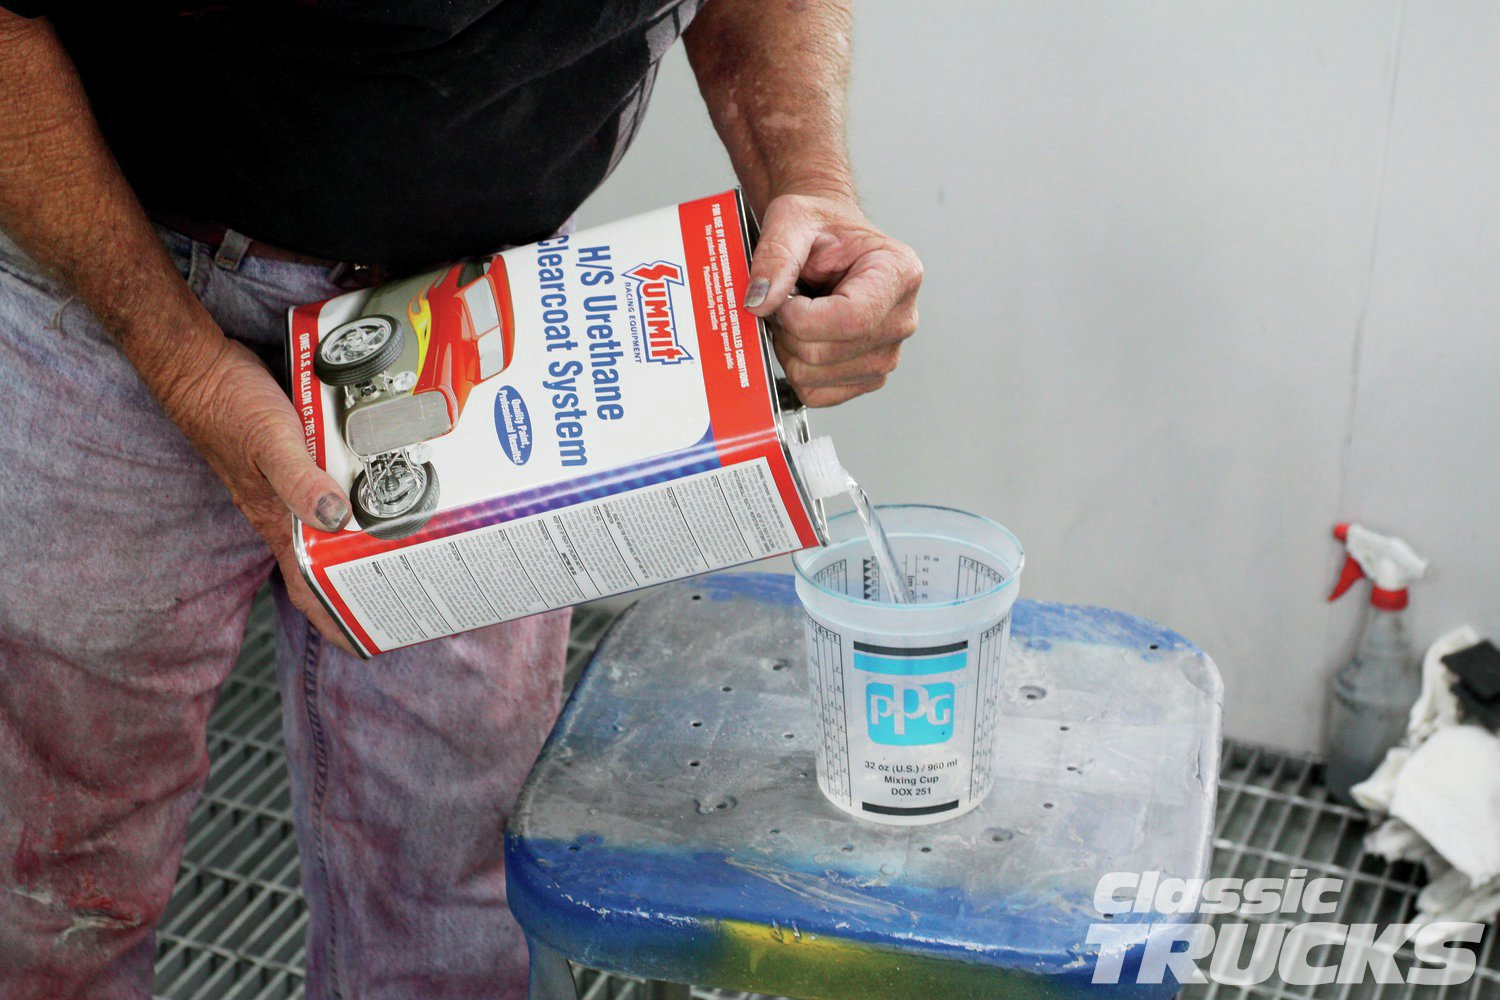 21. Summit Racing's high-solids urethane clear requires no induction time. From the mixing cup it was strained into the gun cup and then it was ready to spray.